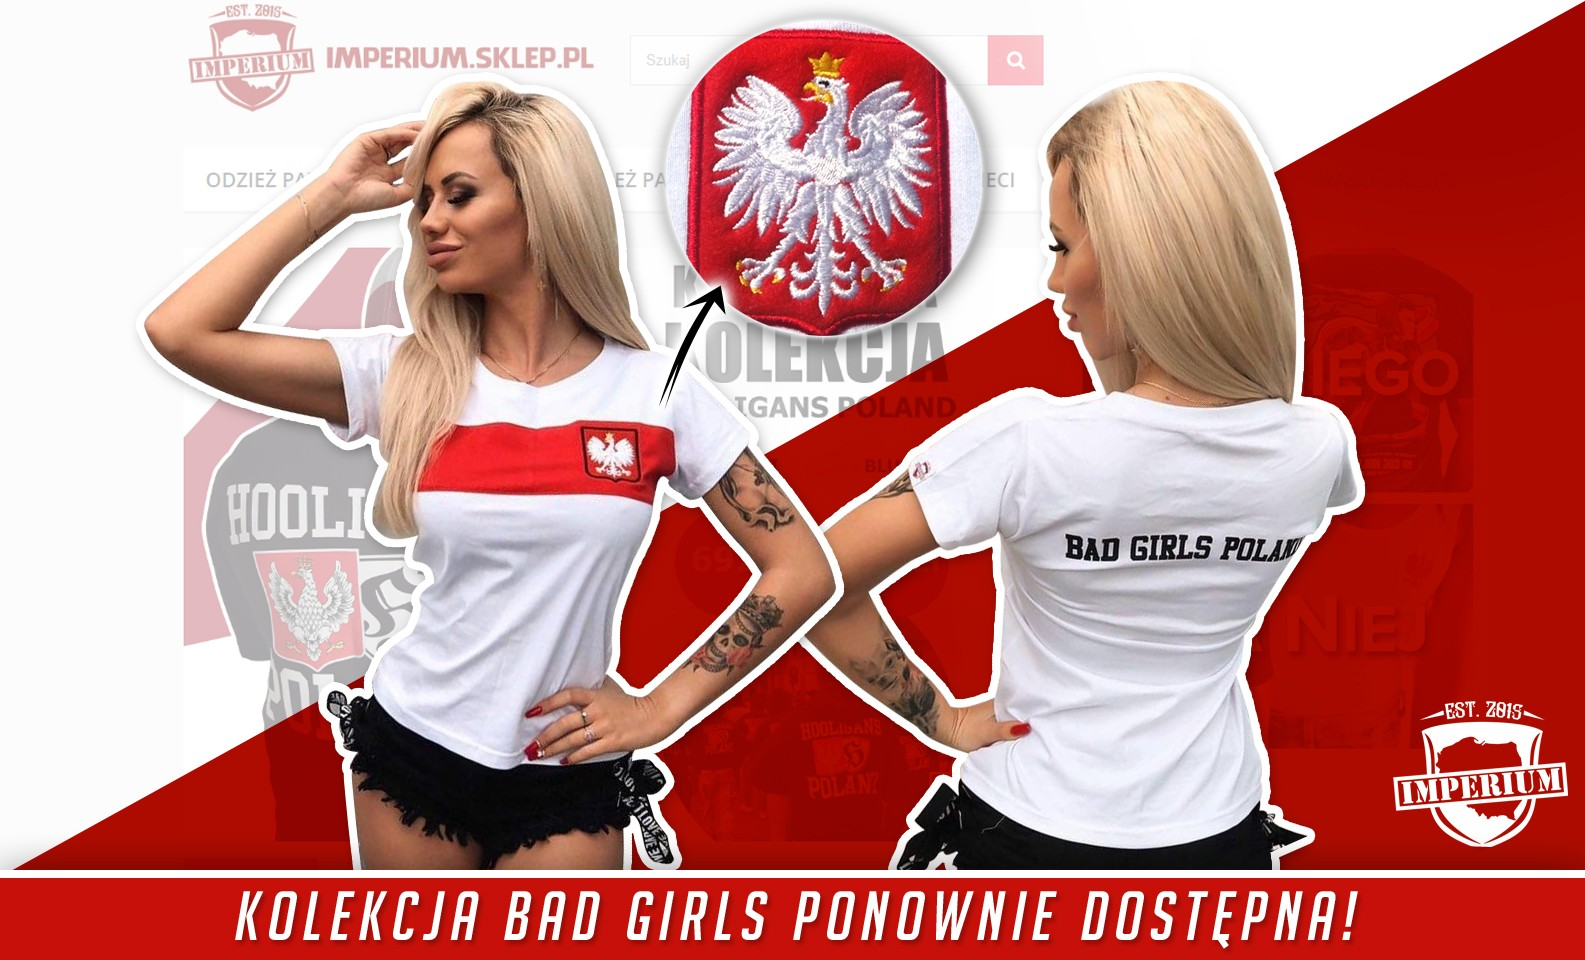 koszulka BAD GIRLS POLAND